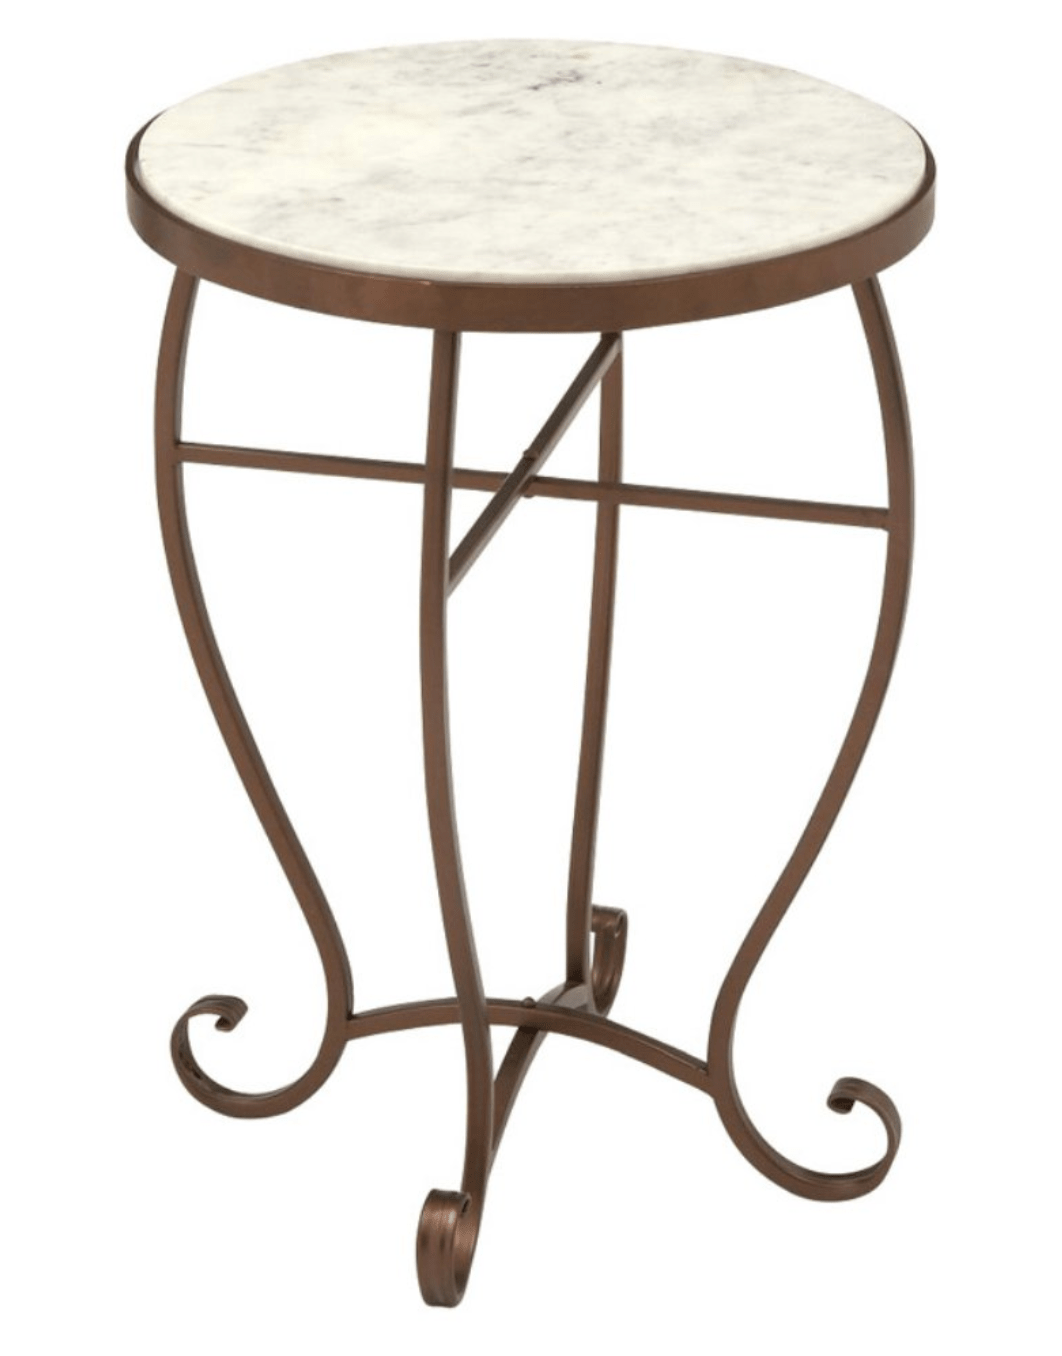 lovely small accent table for compact marble round min top rustic legs kid runner metal tray coffee wicker garden furniture leather trunk fretwork black bar height jcpenney